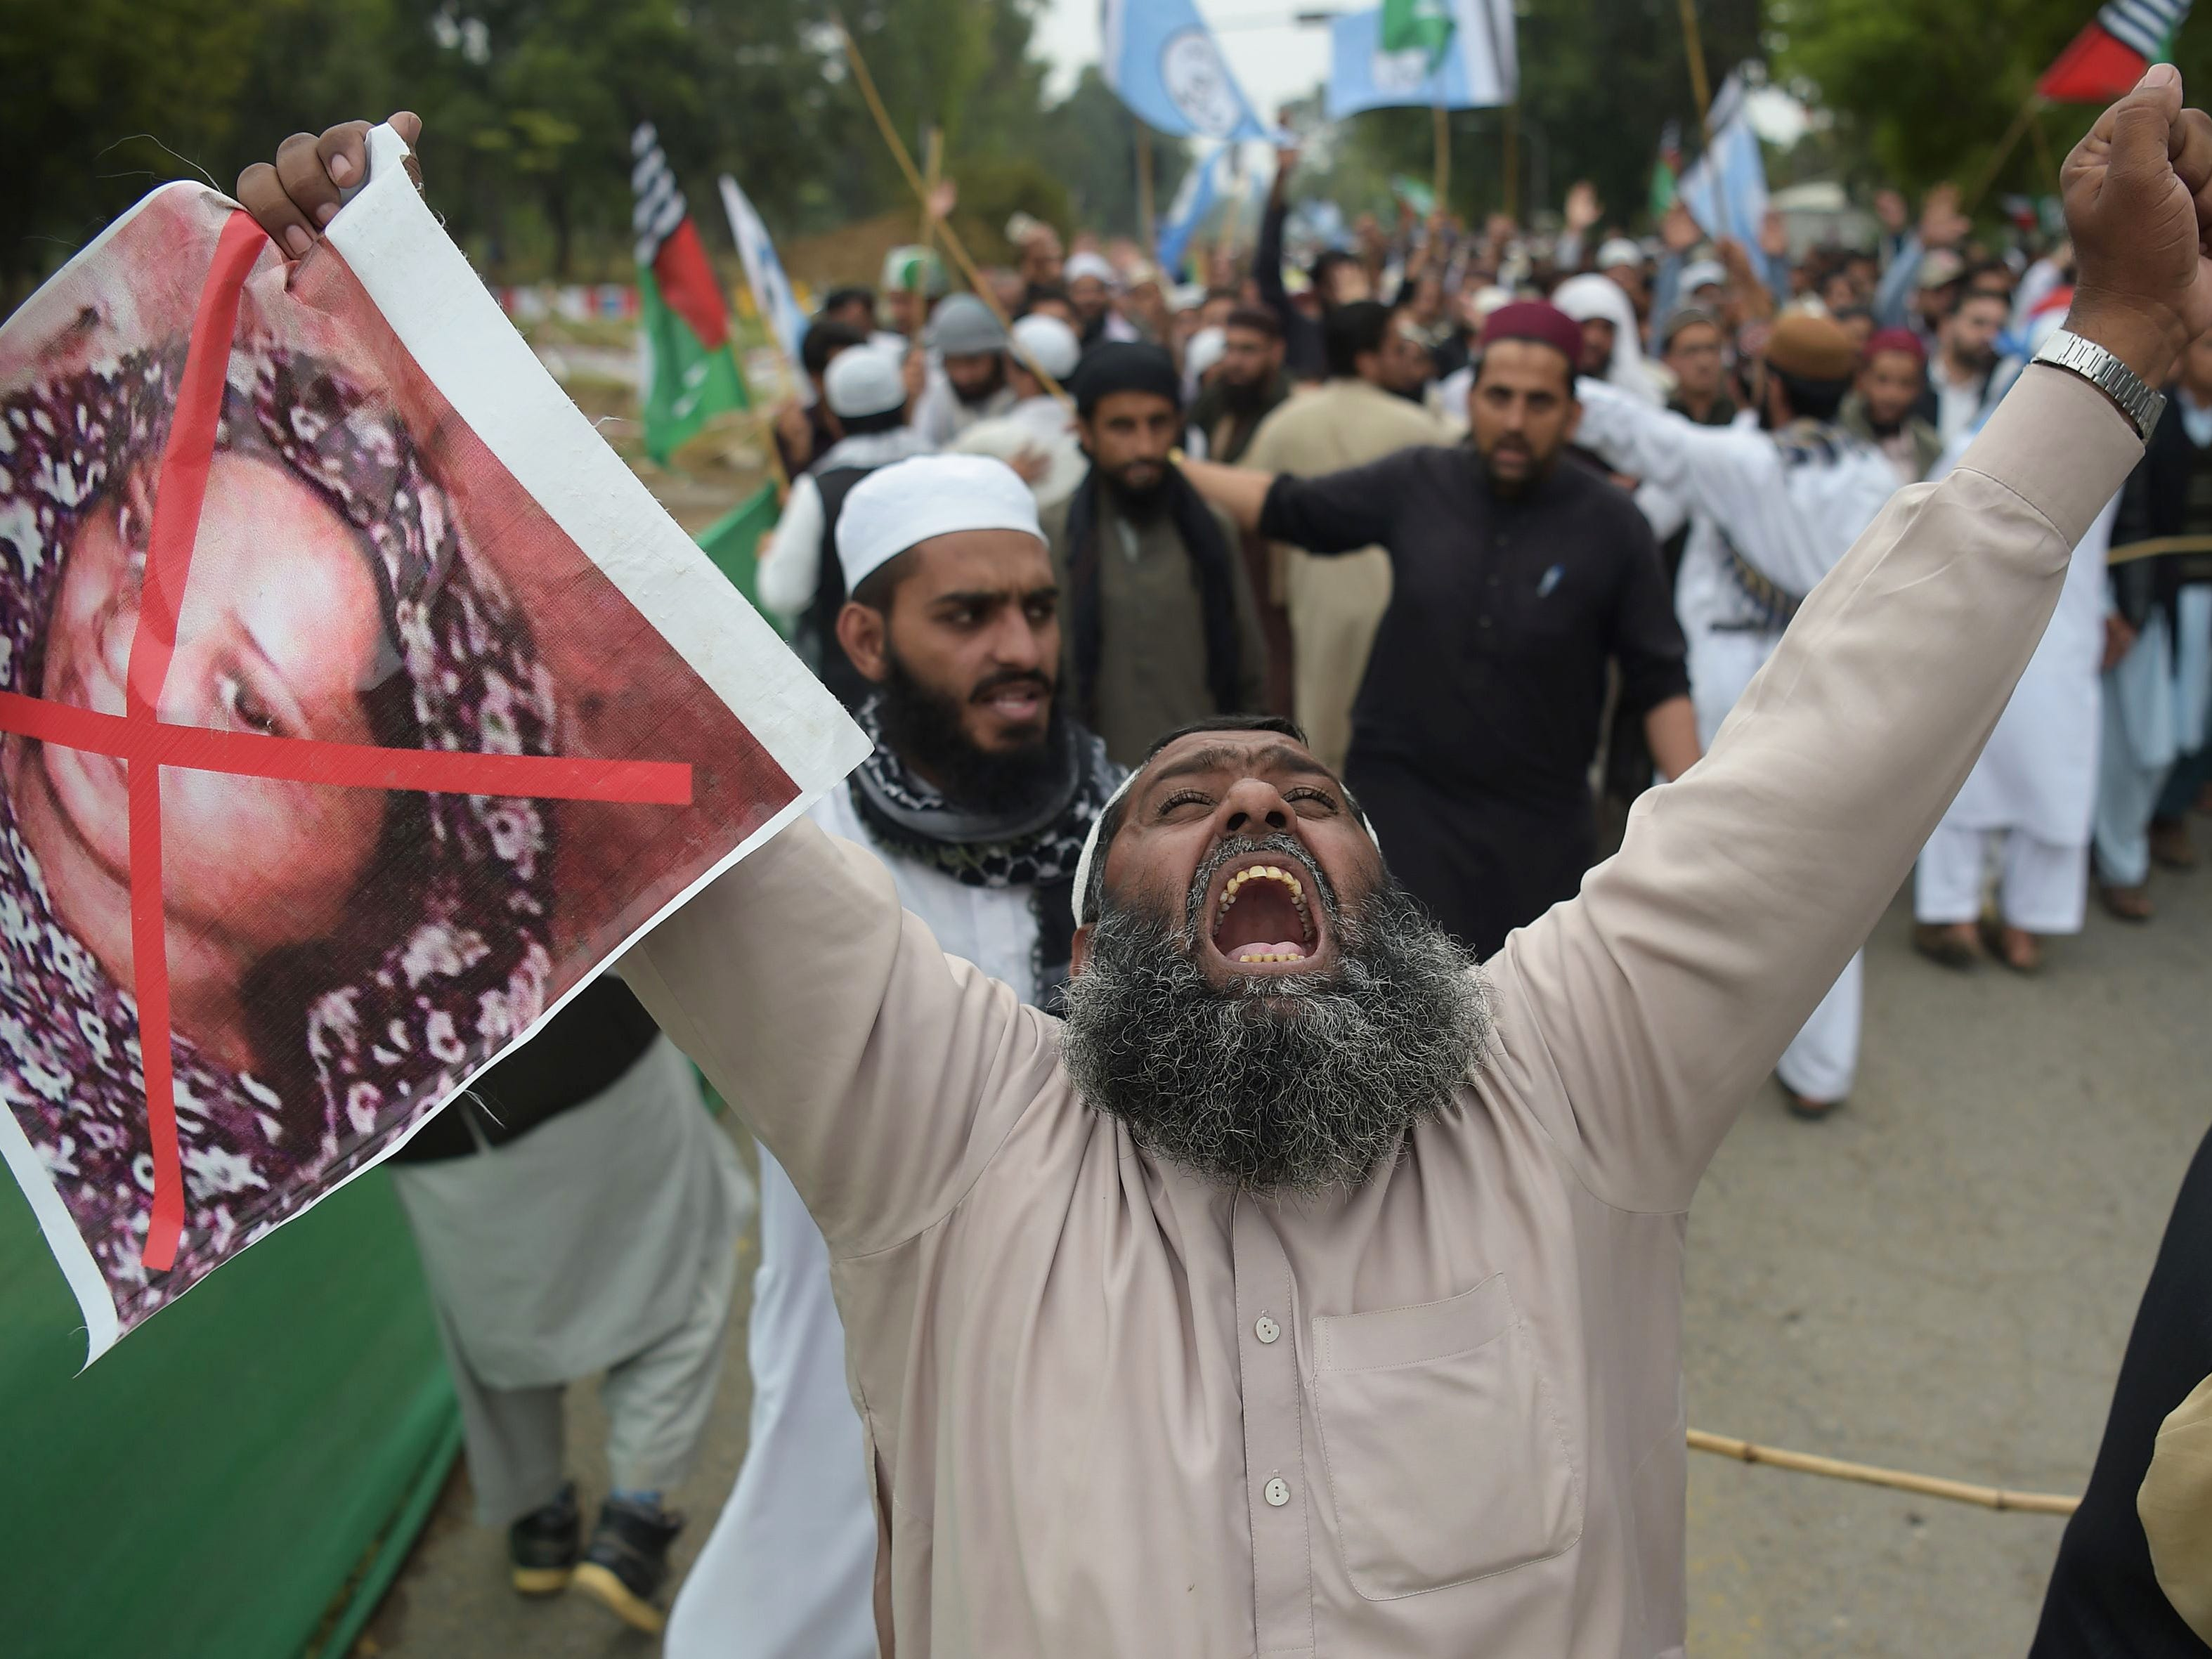 A Pakistani supporter of the Ahle Sunnat Wal Jamaat, a hardline religious party, holds an image of Christian woman Asia Bibi during a protest rally following the Supreme Court's decision to acquit Bibi of blasphemy, in Islamabad on November 2, 2018.